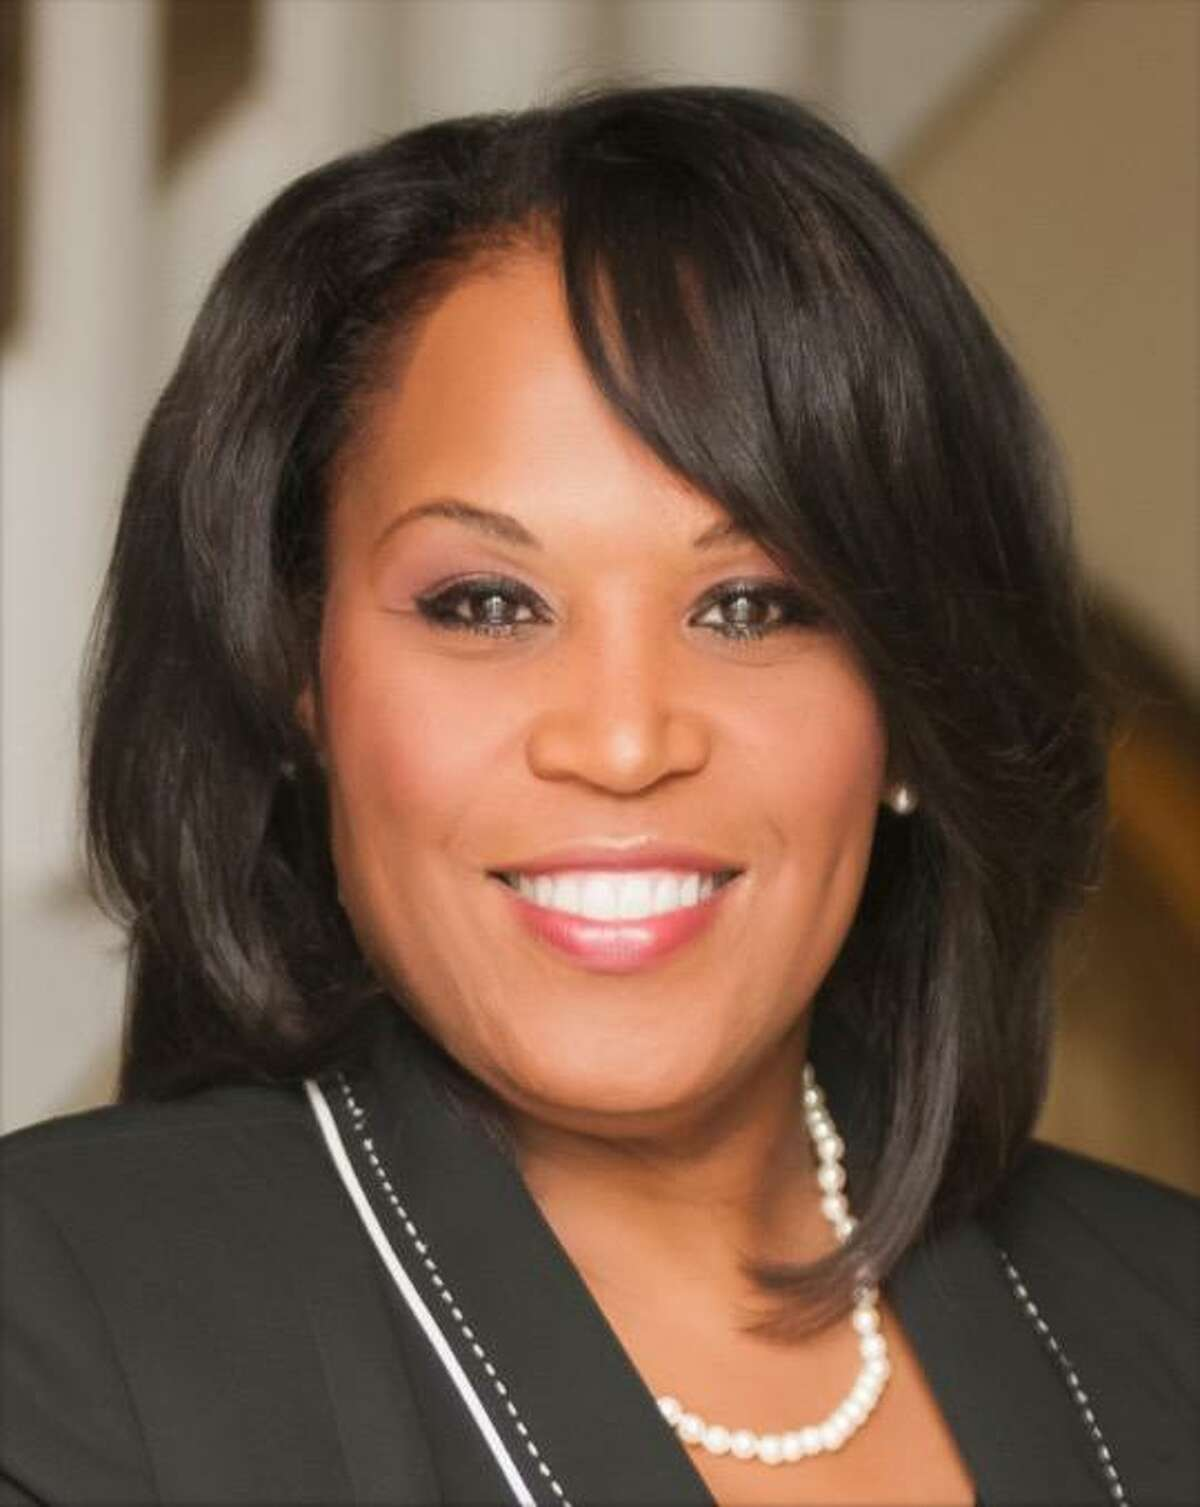 Lesia L. Crumpton-Young has been named the sole finalist for the position of president of Texas Southern University.